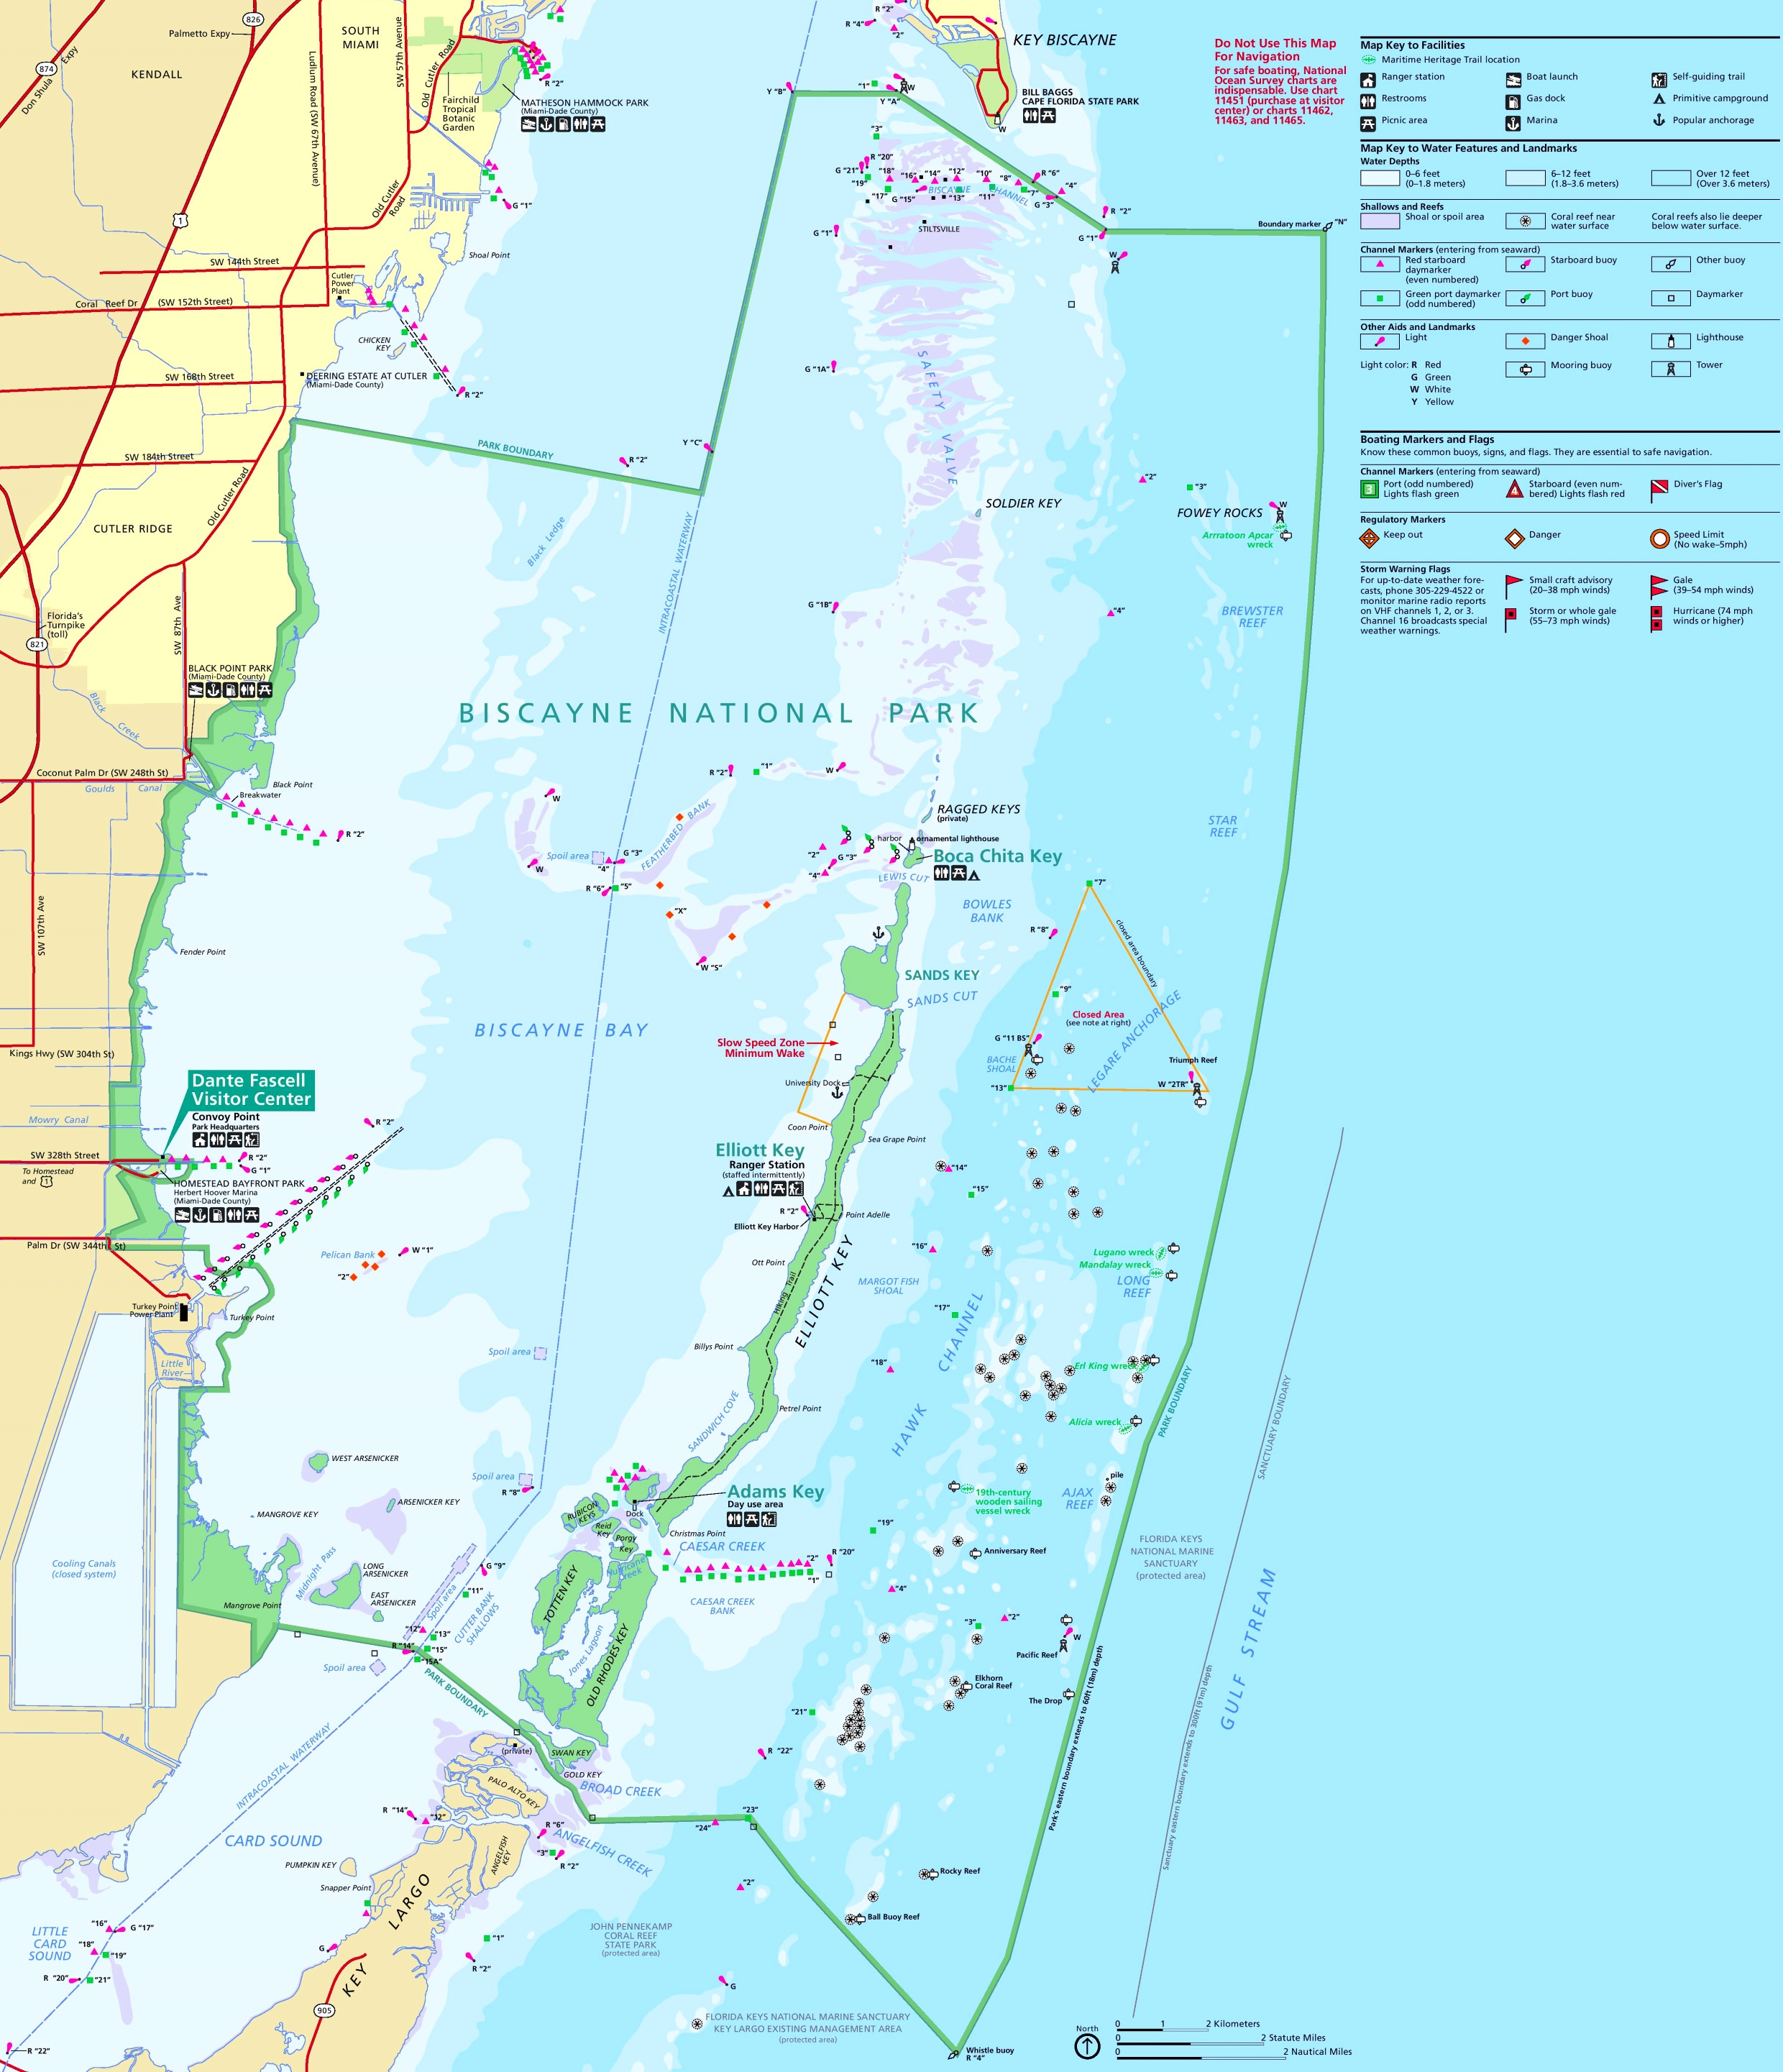 Biscayne National Park tourist map